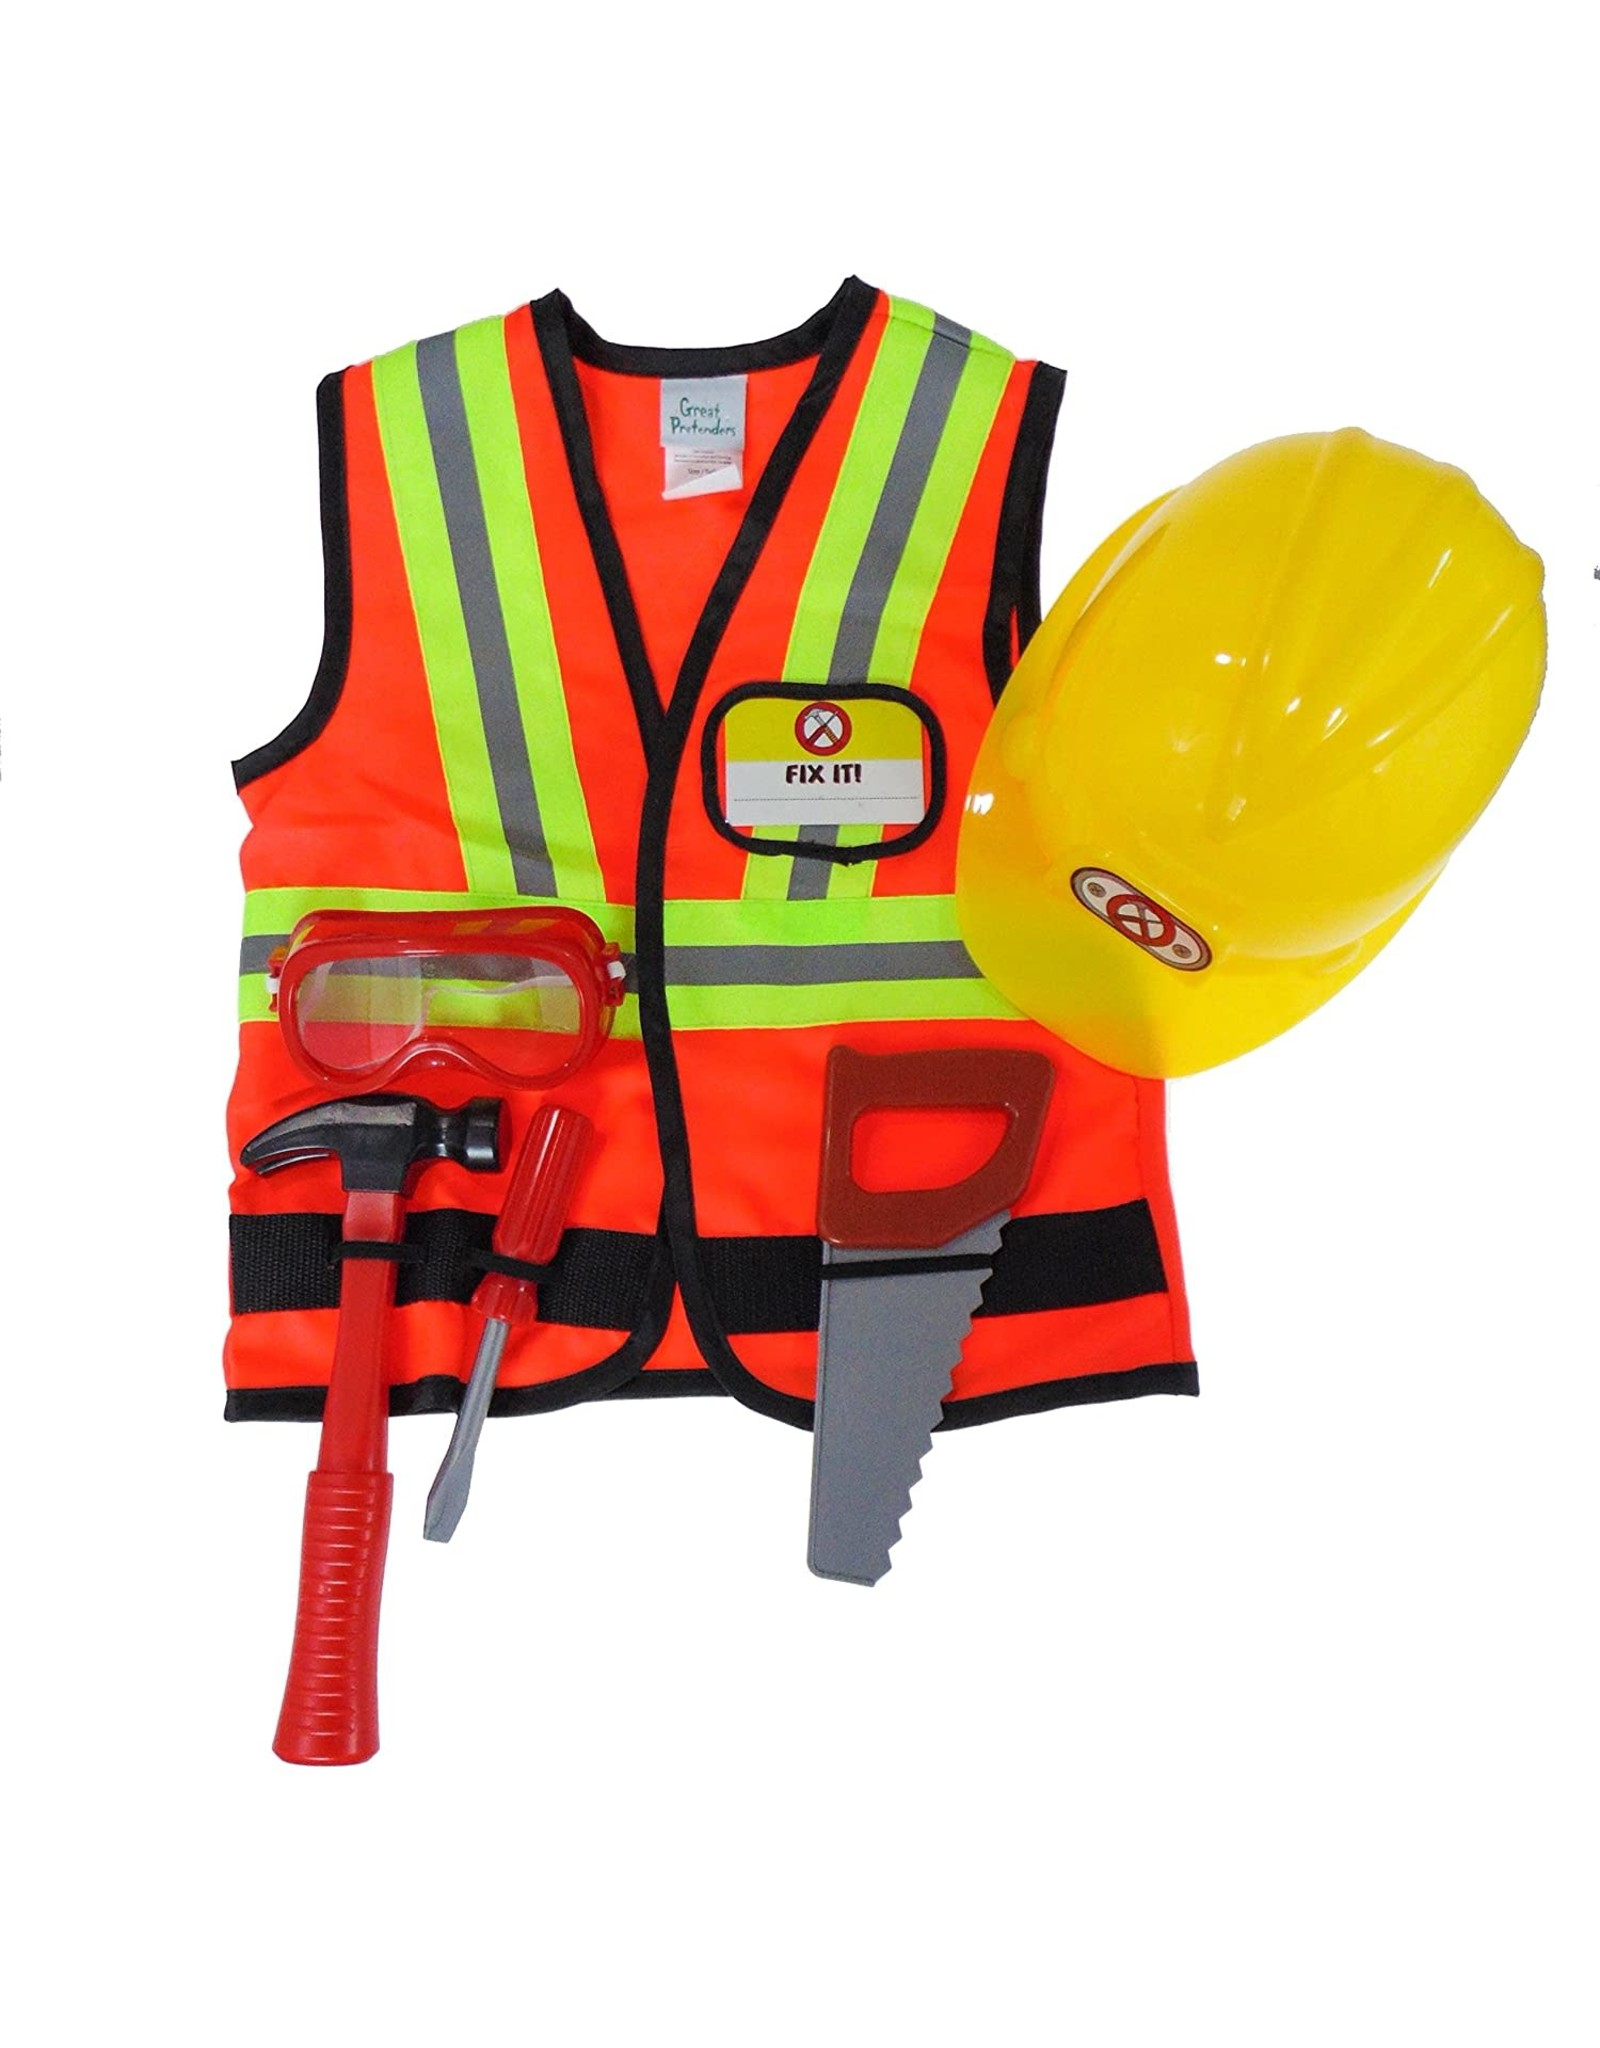 Great Pretenders Construction Worker with Accessories, 5-6